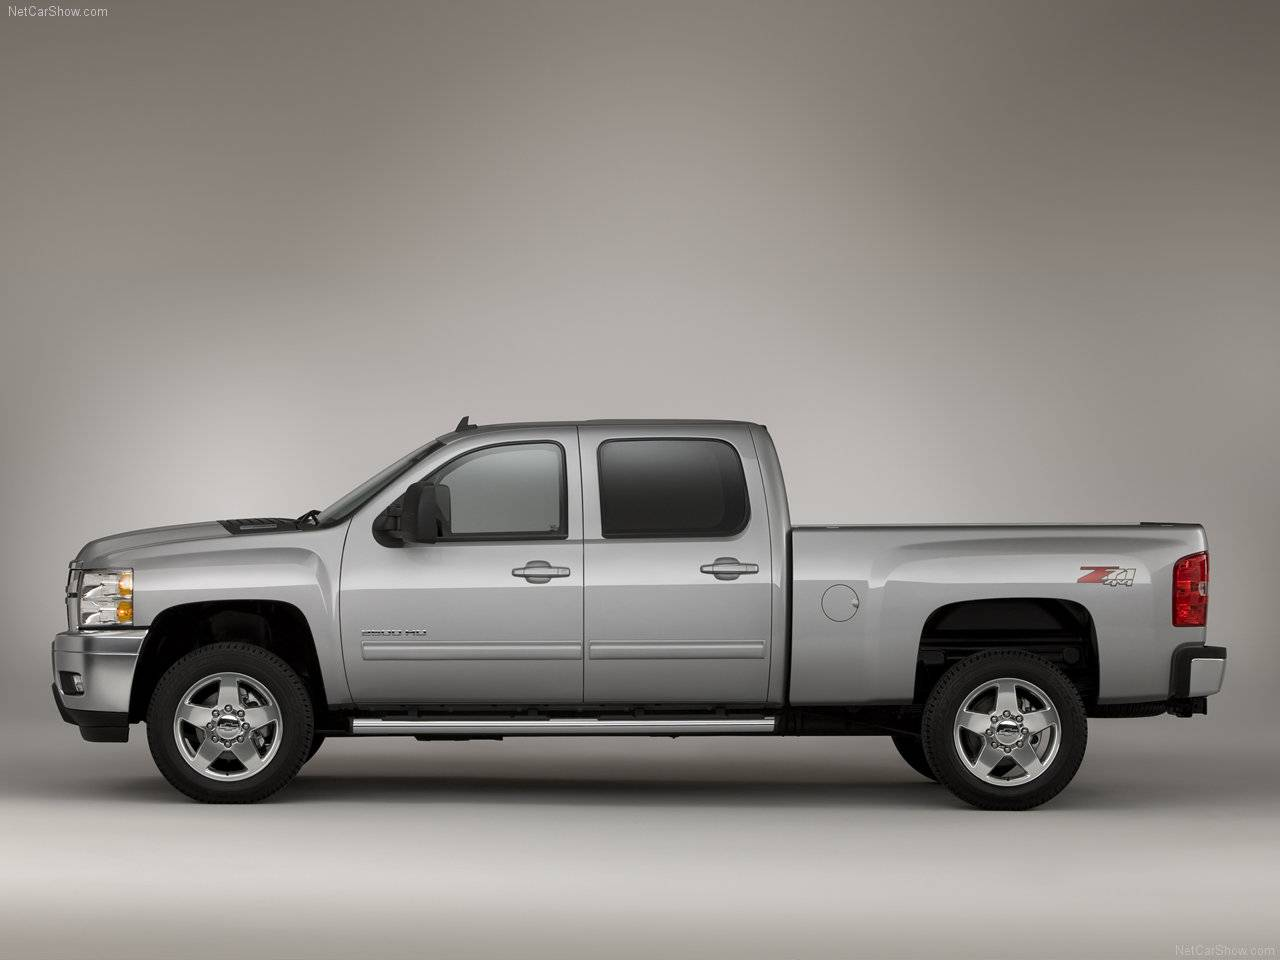 2011 Chevrolet Silverado HD photos